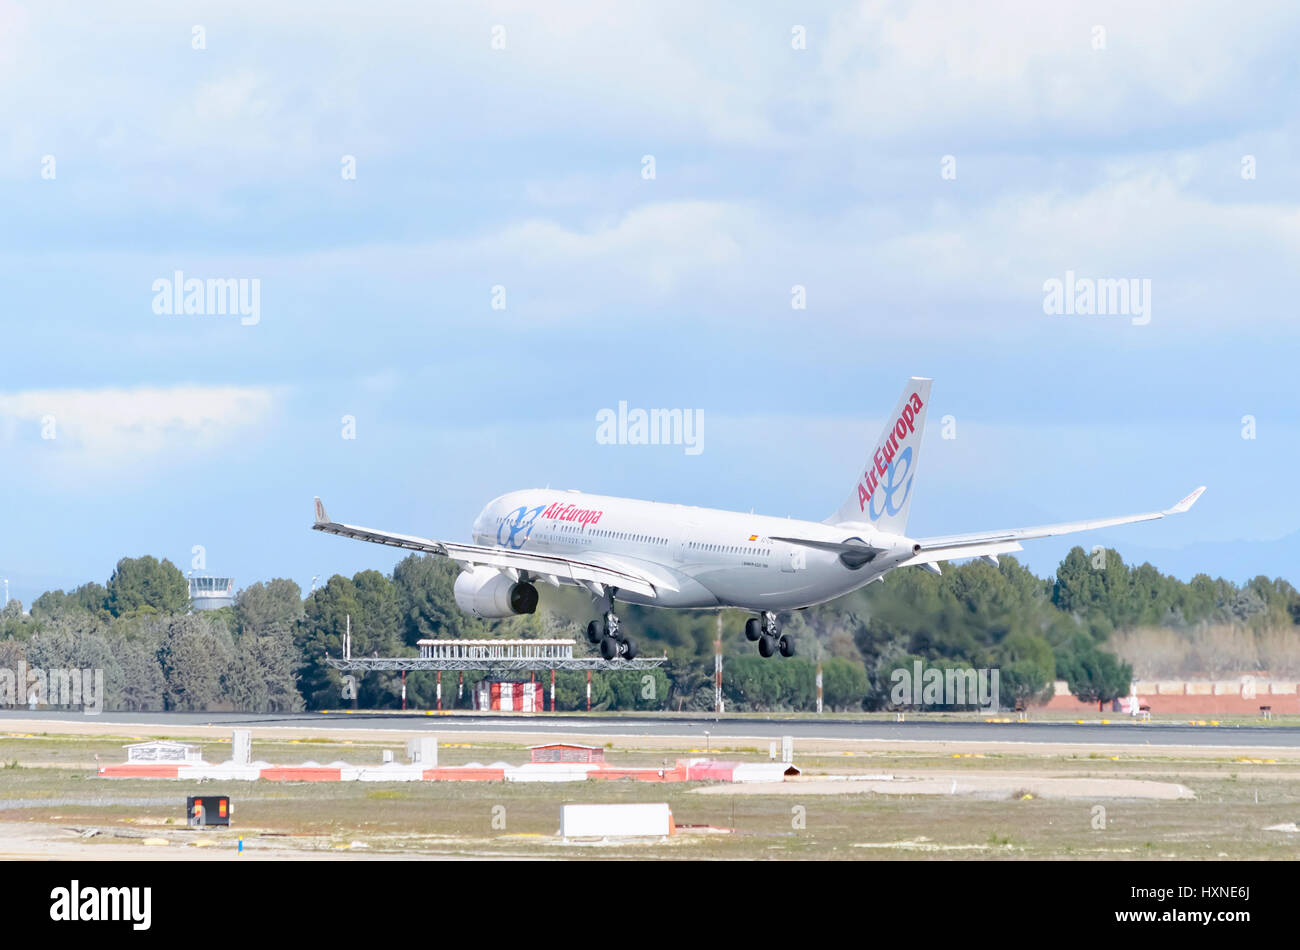 White plane Airbus A330, of Air Europa airline, is landing in Madrid - Barajas, Adolfo Suarez airport. Cloudy day - Stock Image